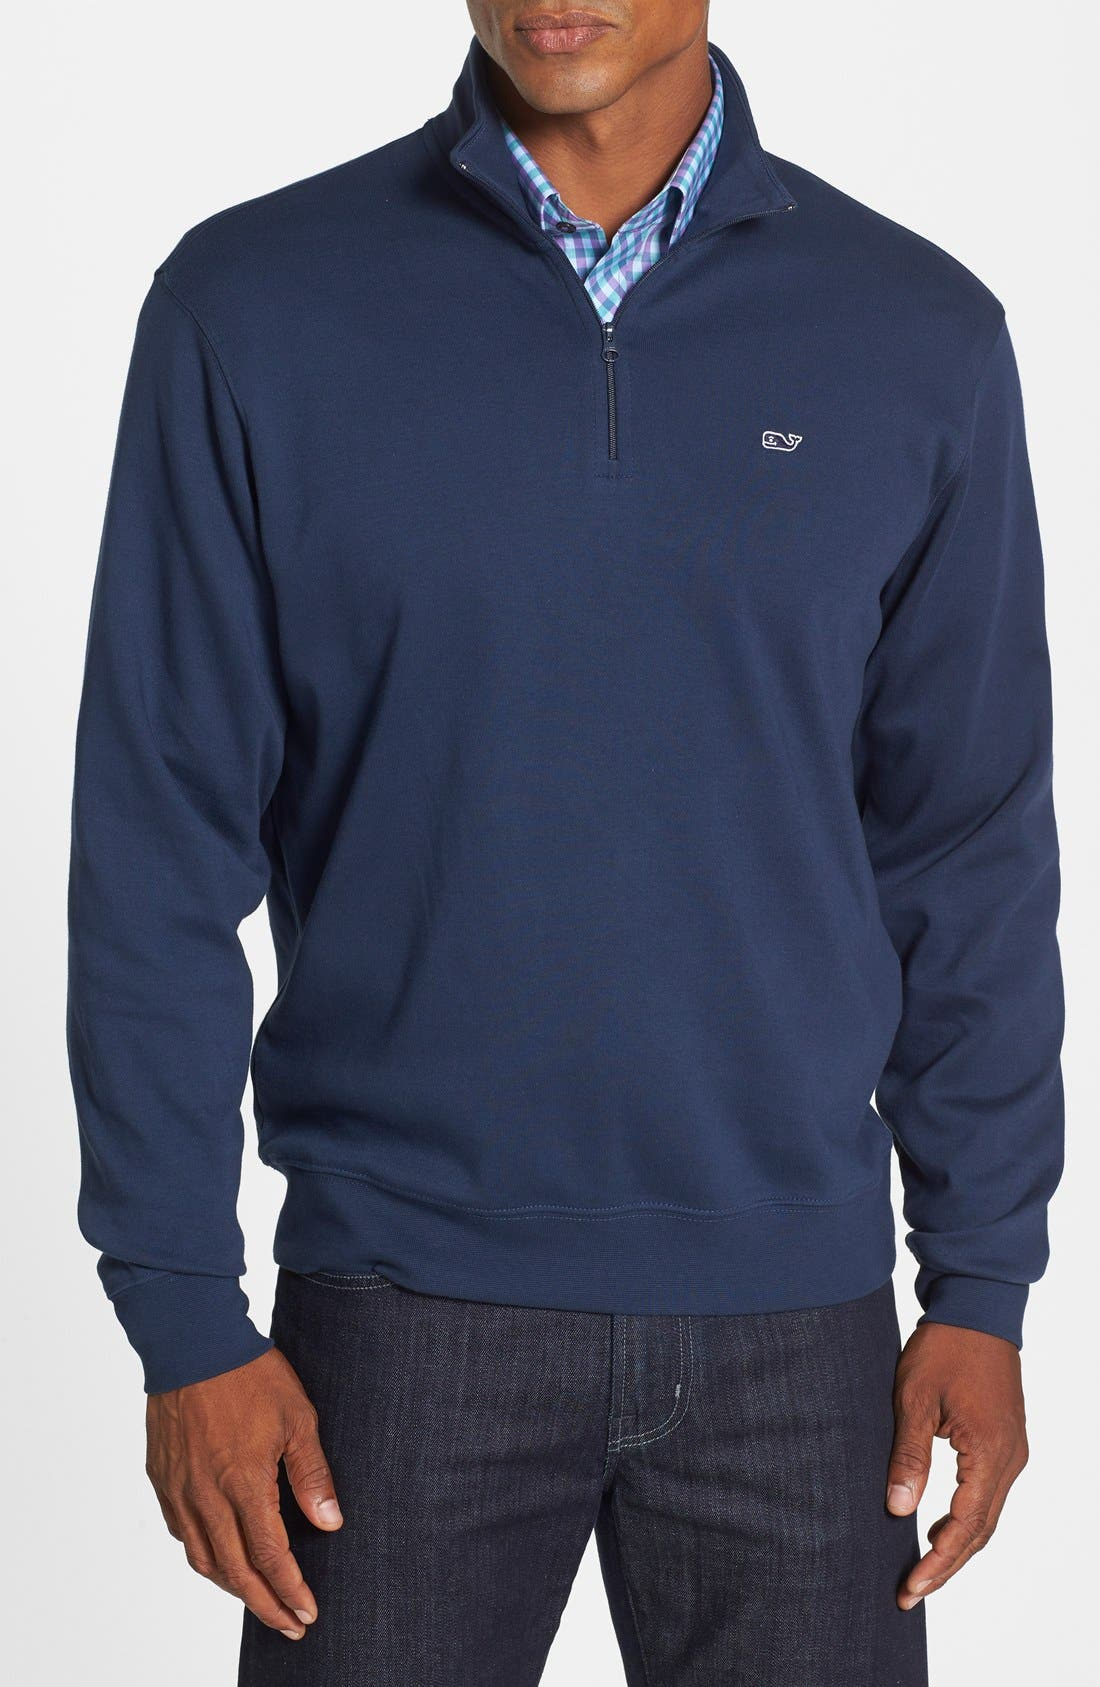 Alternate Image 1 Selected - Vineyard Vines Quarter Zip Cotton Jersey Sweatshirt